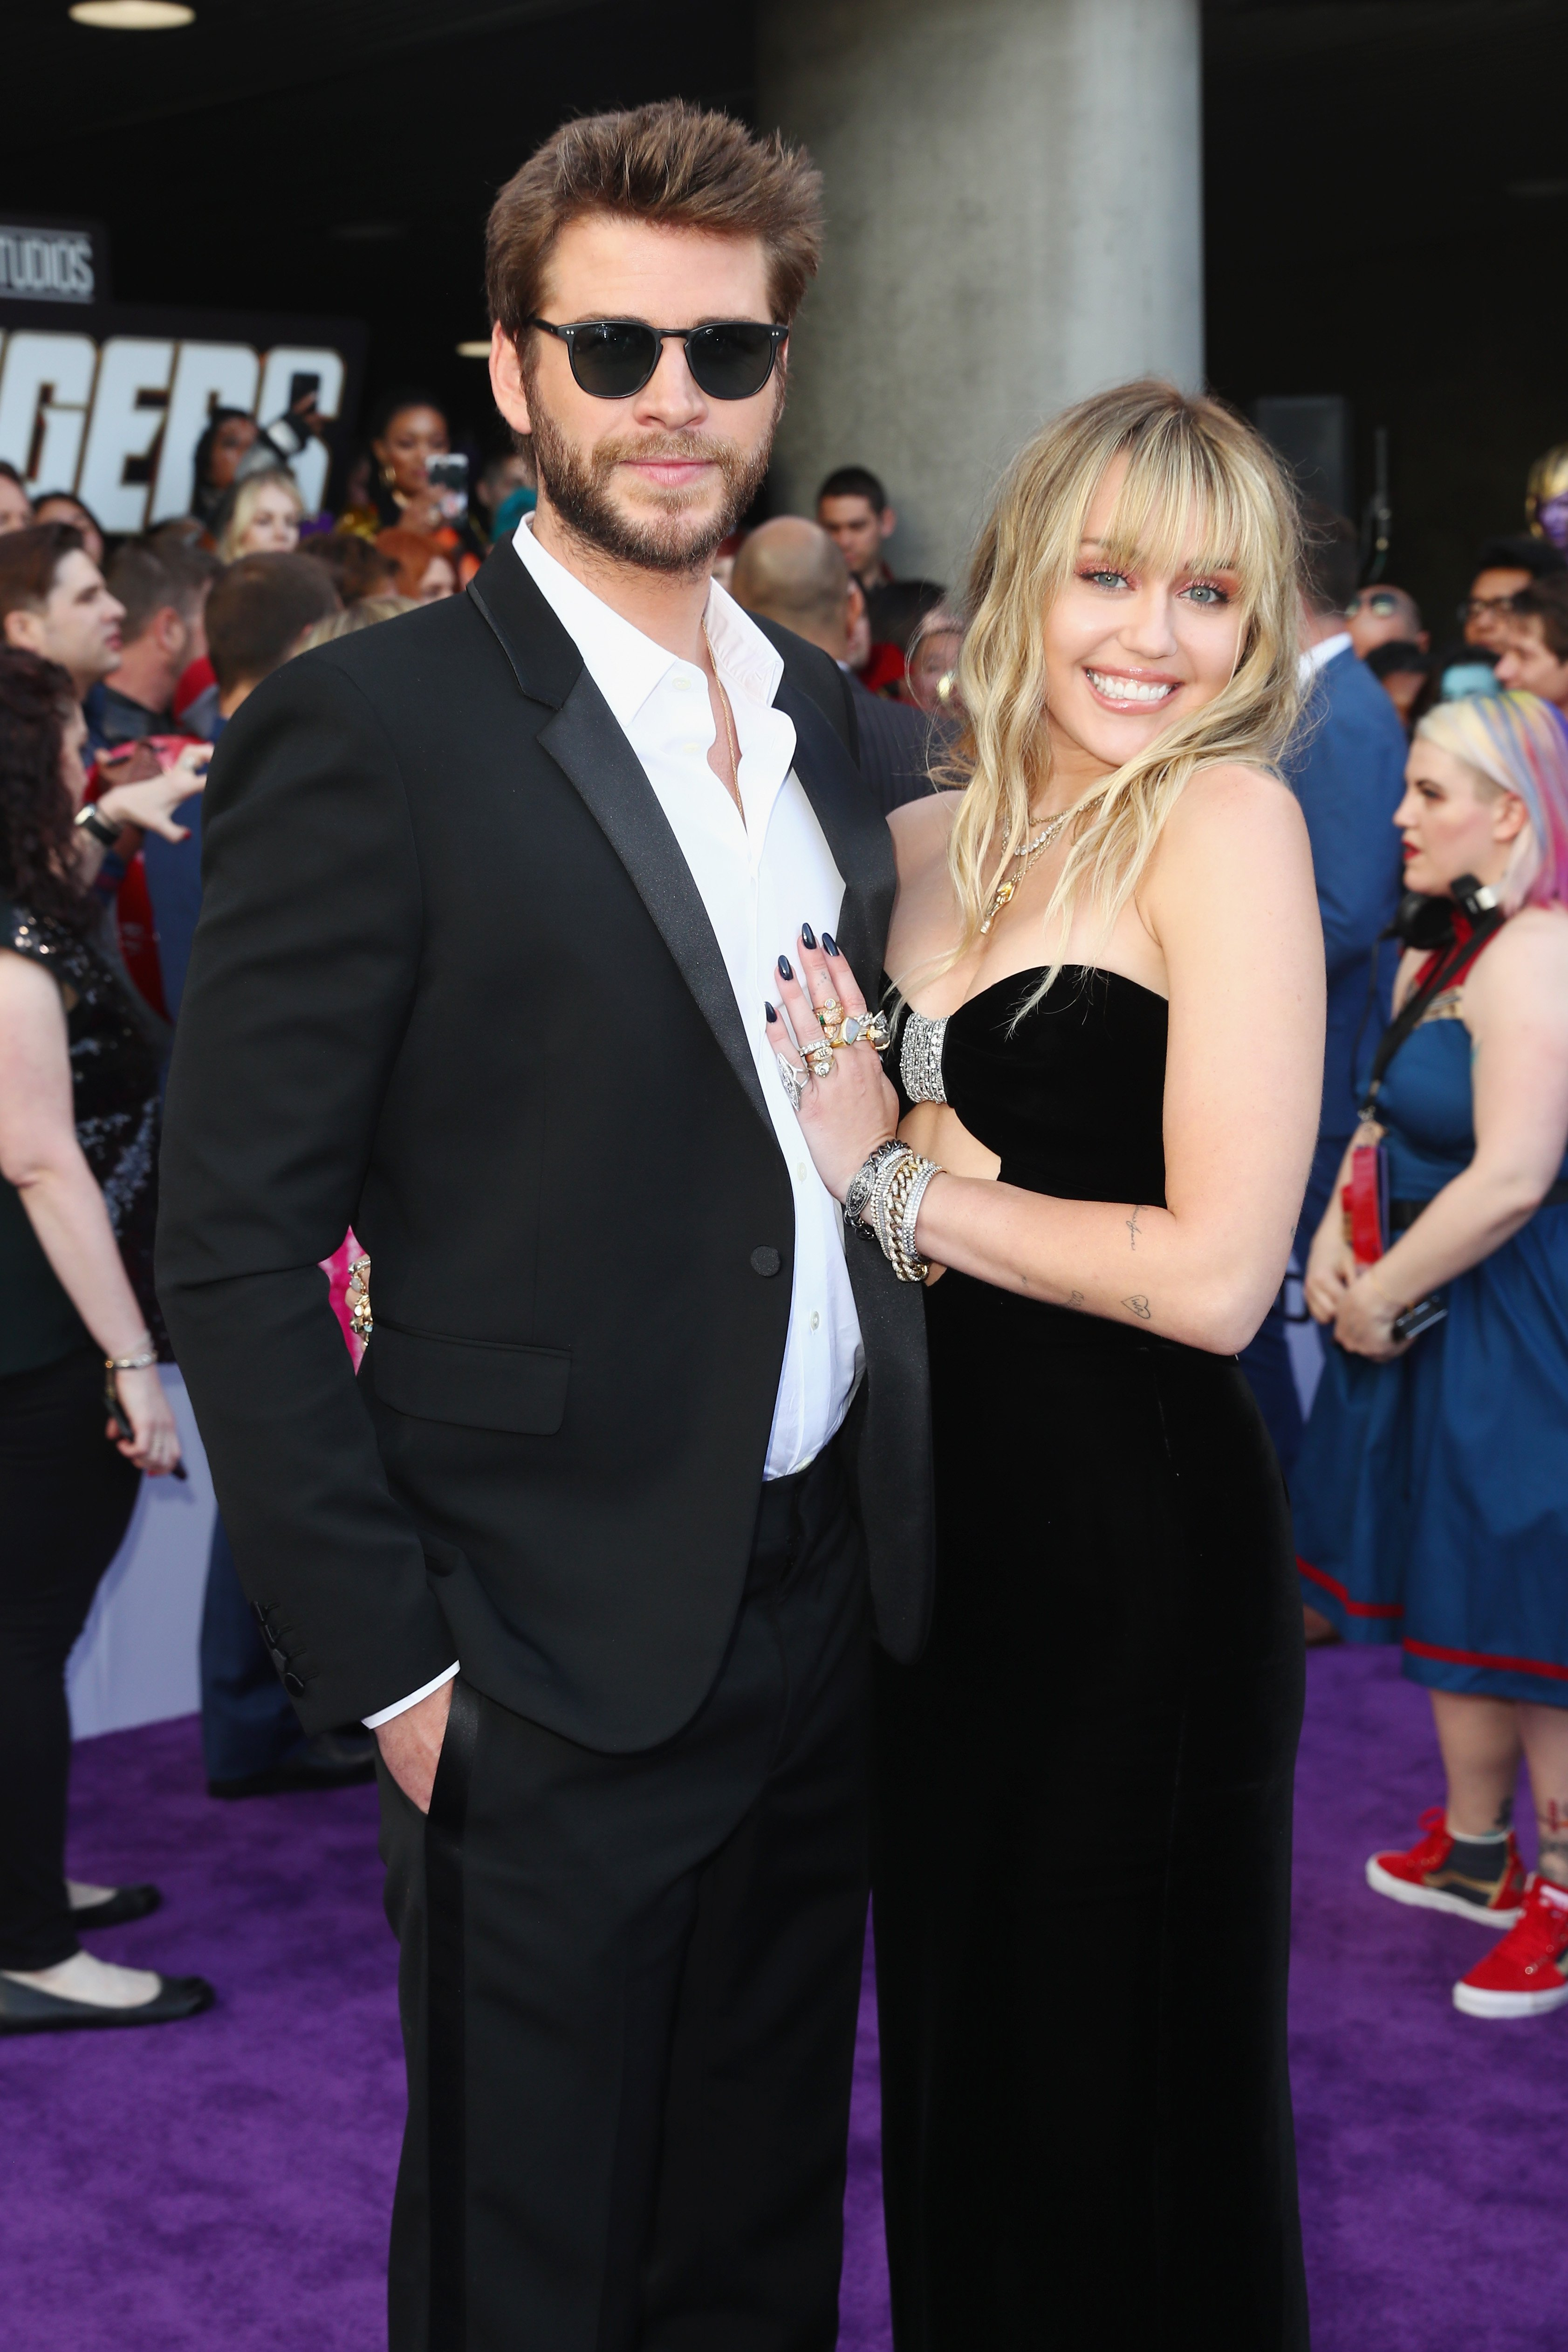 """Liam Hemsworth and Miley Cyrus attend Audi Arrives At The World Premiere Of """"Avengers: Endgame"""" on April 22, 2019, in Hollywood, California. 